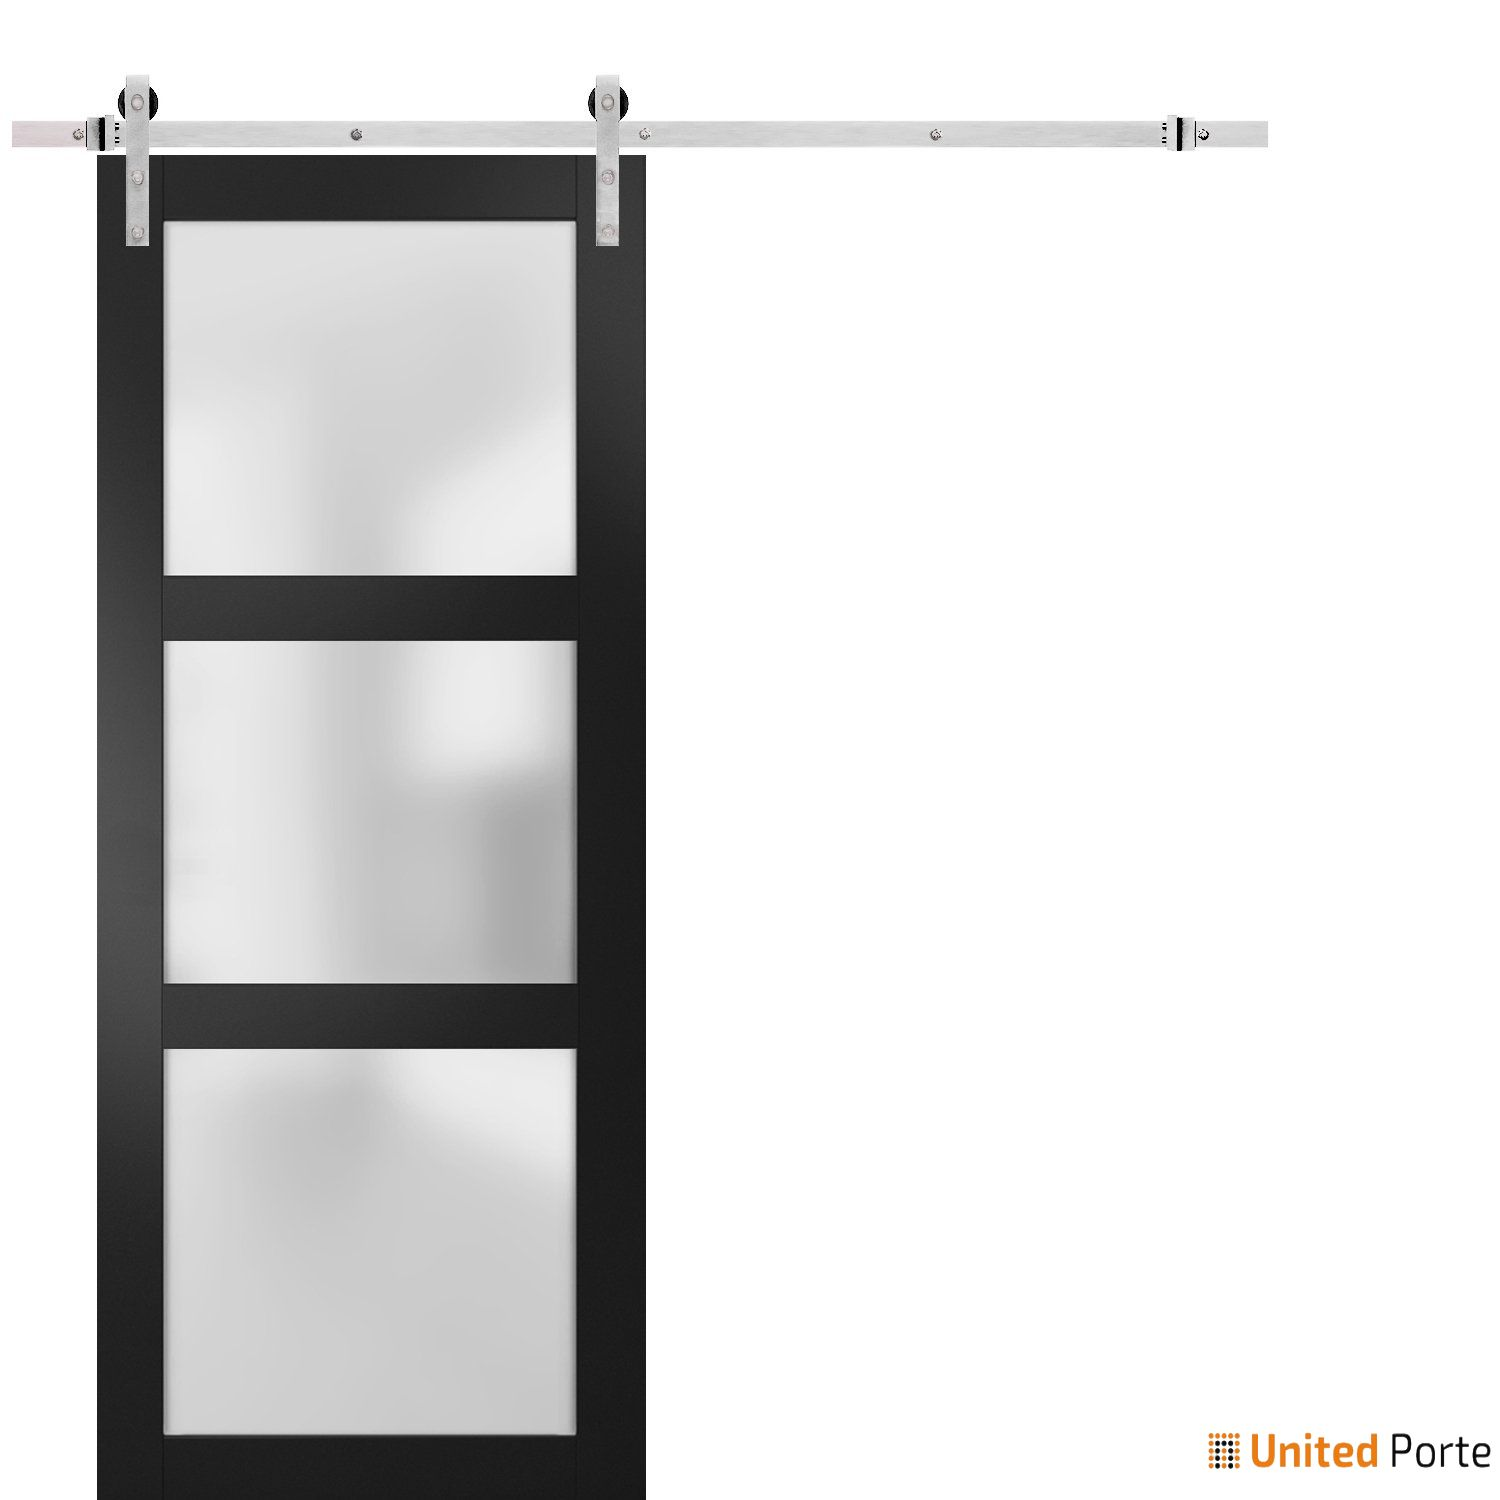 Lucia 2552 Matte Black Sturdy Barn Door Frosted Glass with Stainless Hardware   Solid Panel Interior Barn Doors